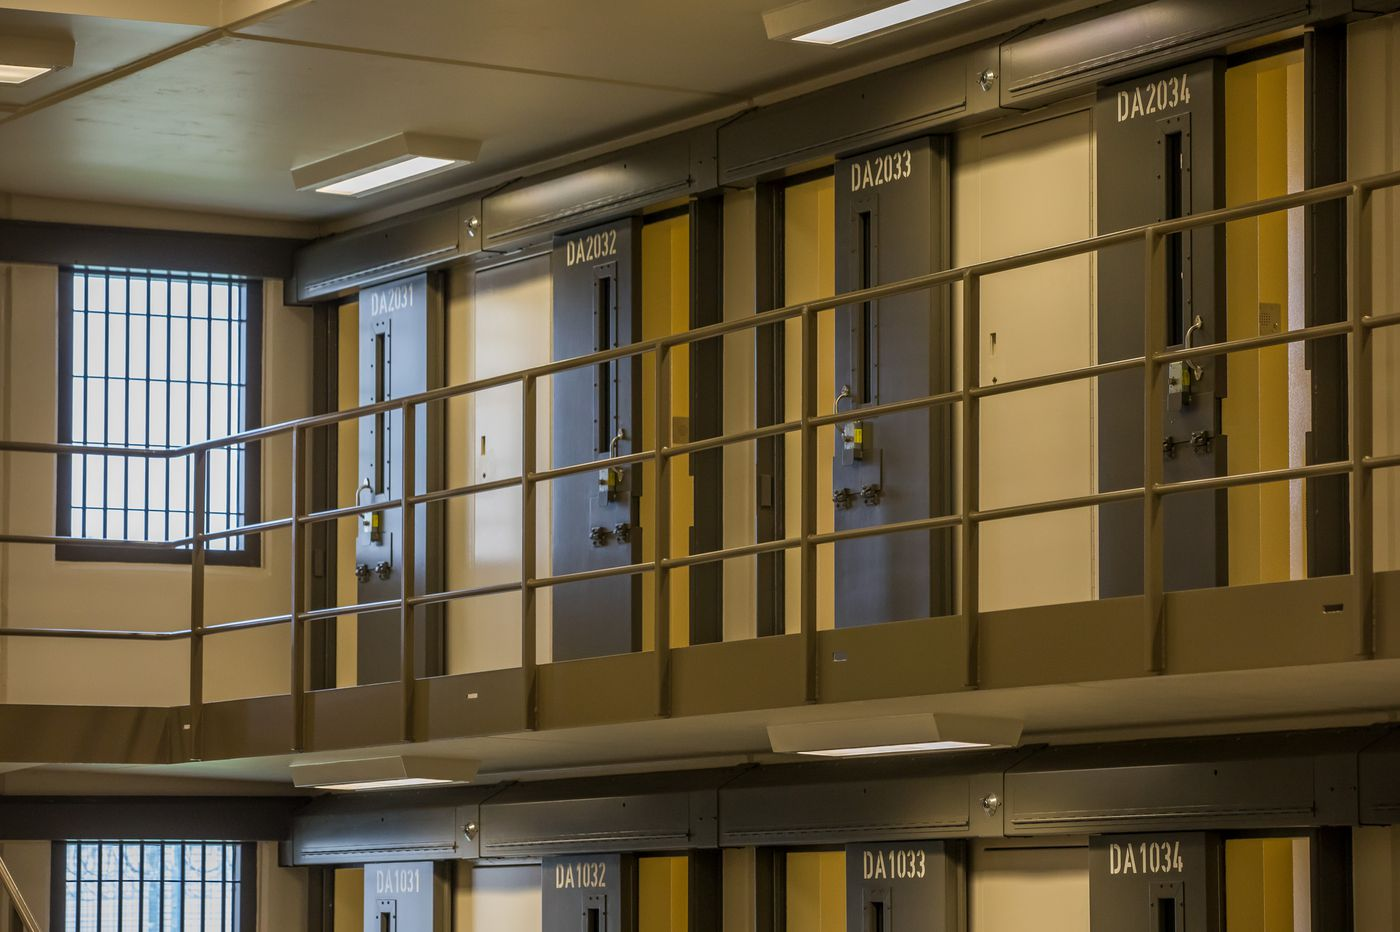 Philly man held in solitary confinement 33 years must be let off death row, court rules